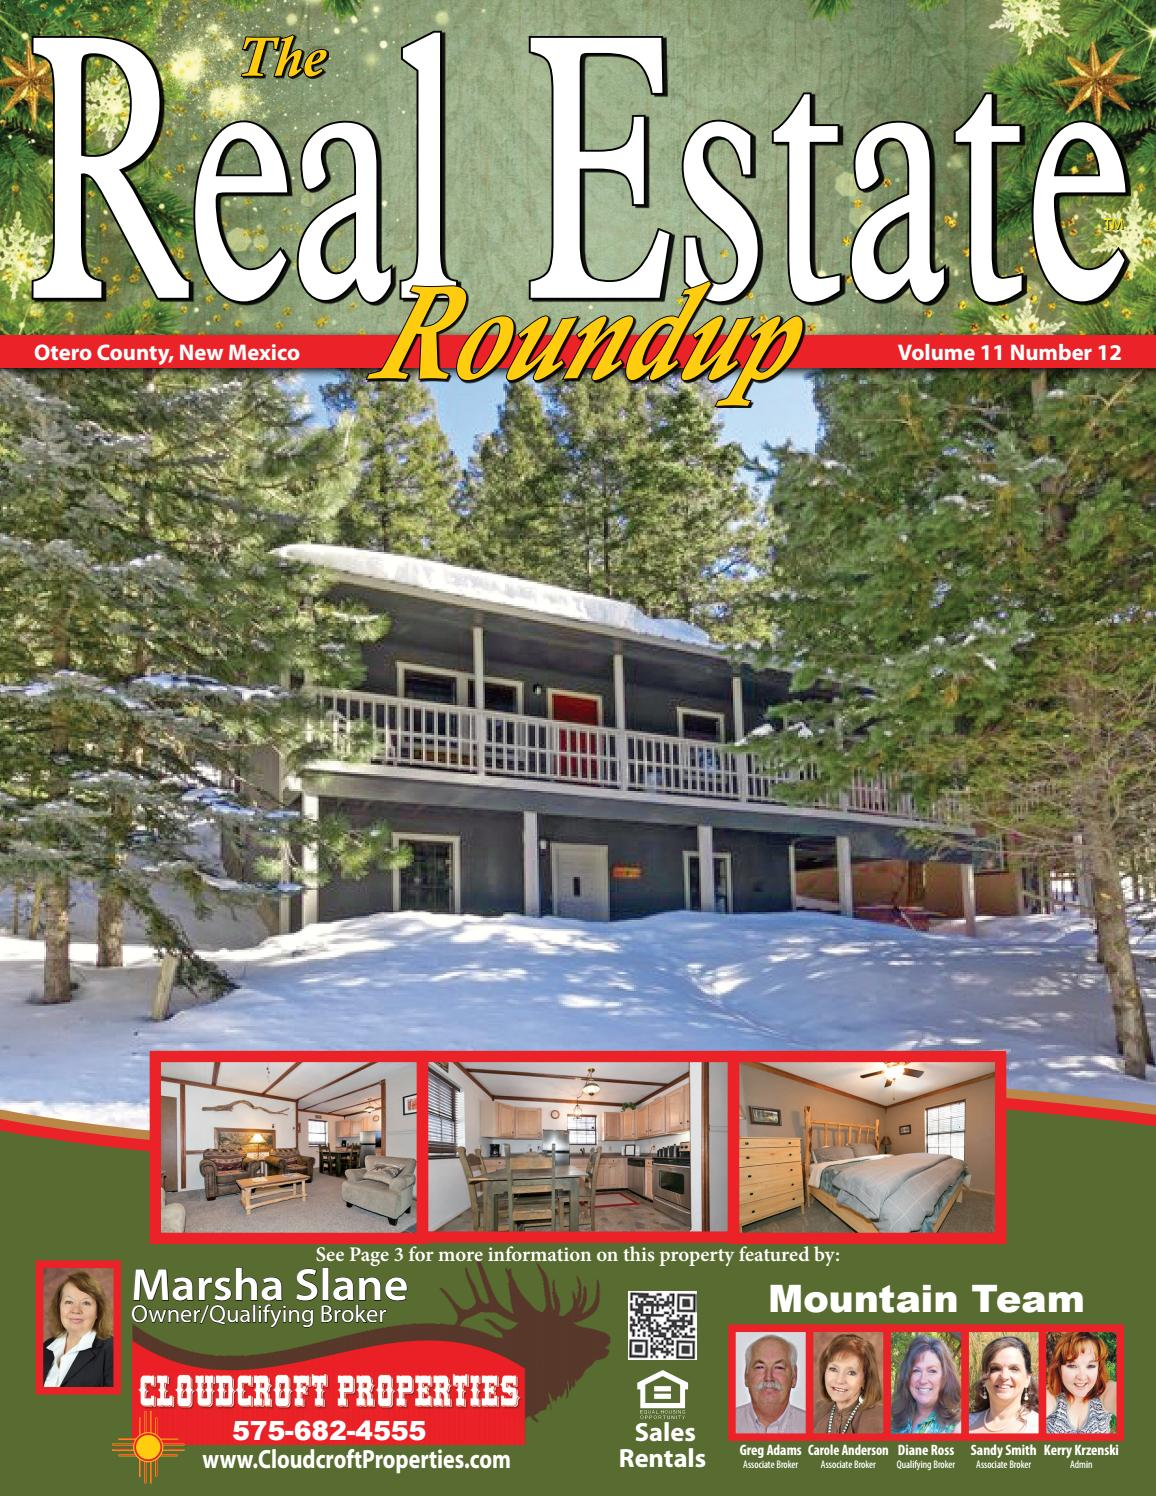 New mexico otero county cloudcroft - Alamogordo Real Estate With Homes Land Listings For Sale Cloudcroft Tularosa High Rolls 1112 By Helpful Publications Issuu